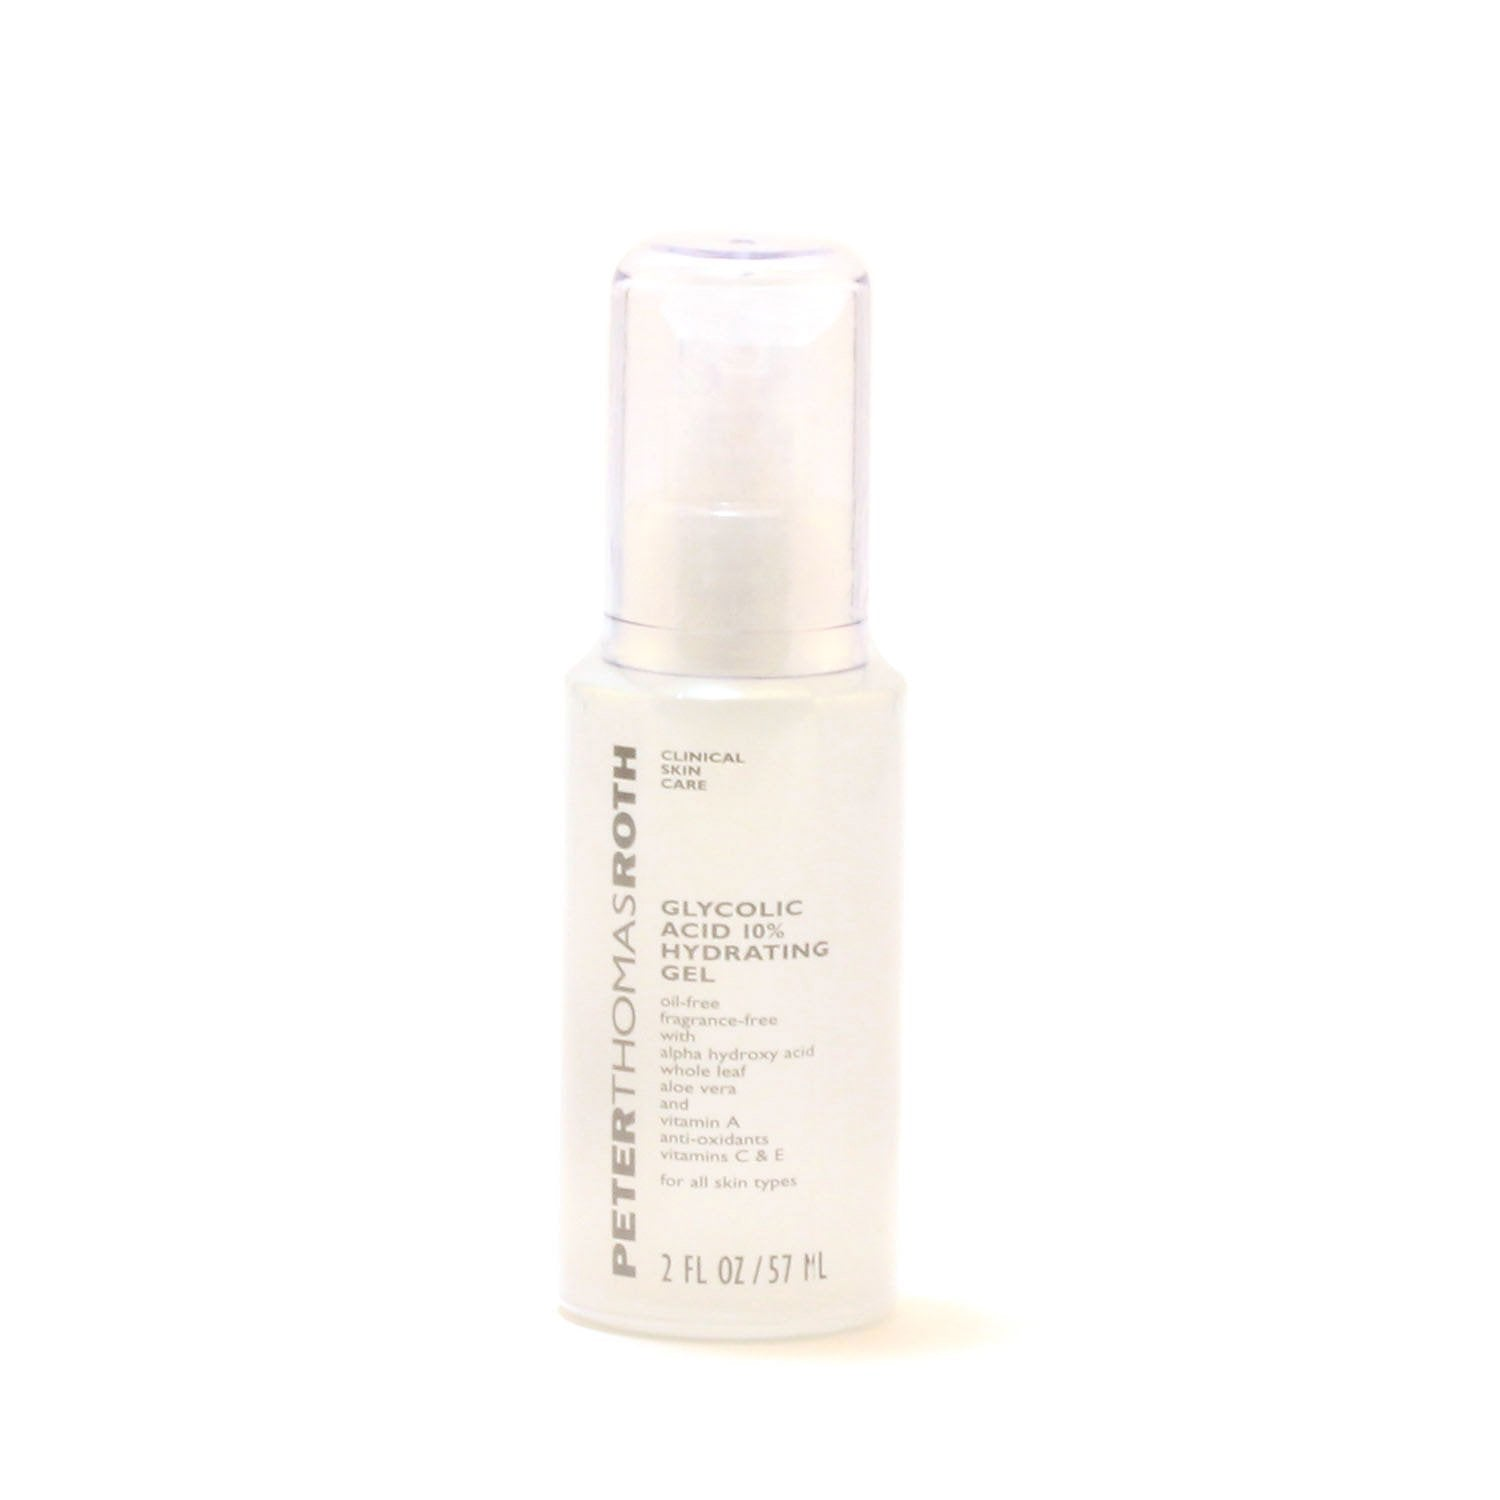 Skin Care - PETER THOMAS ROTH GLYCOLIC ACID 10% HYDRATING GEL, 2.0 OZ